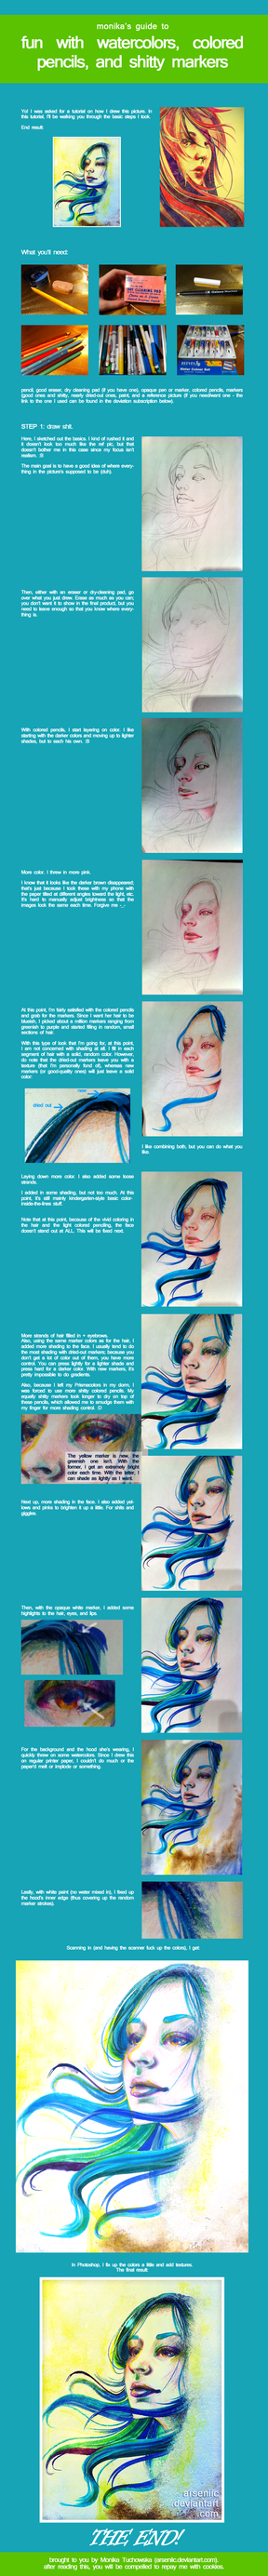 How to draw my Windy pictures by arseniic